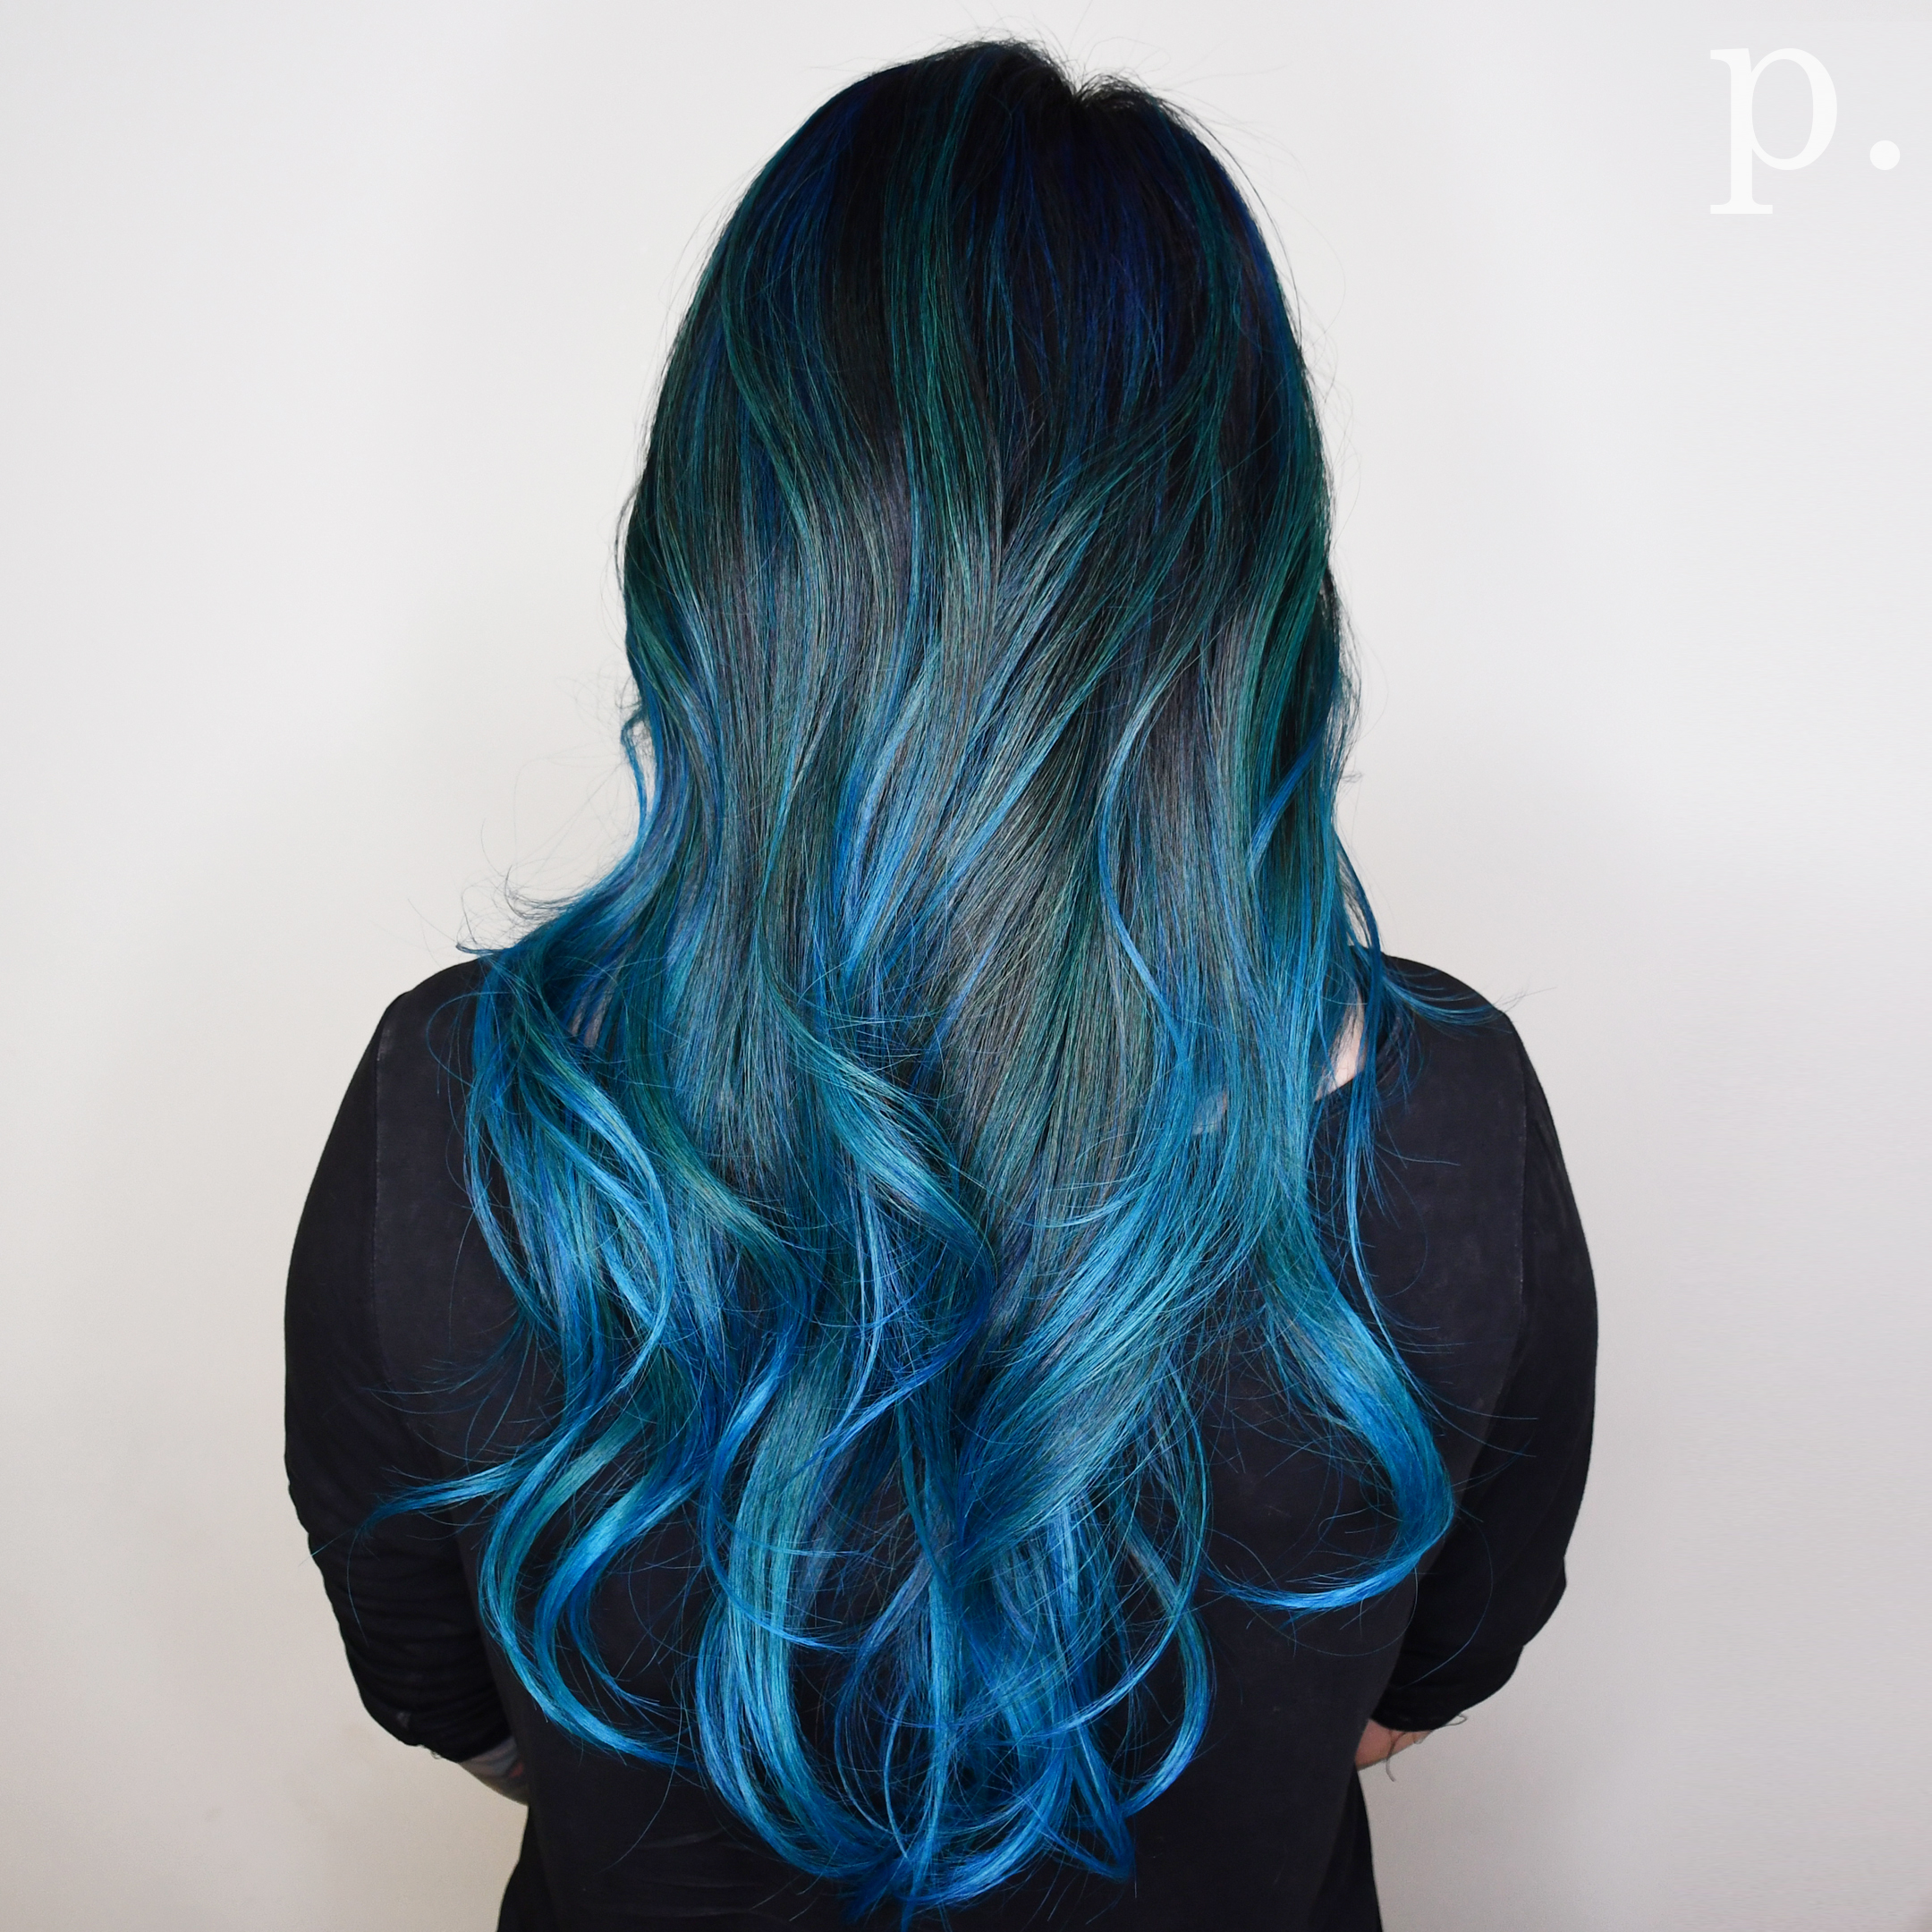 blue_hair_long_hairstyle_Toronto_zack.jpg